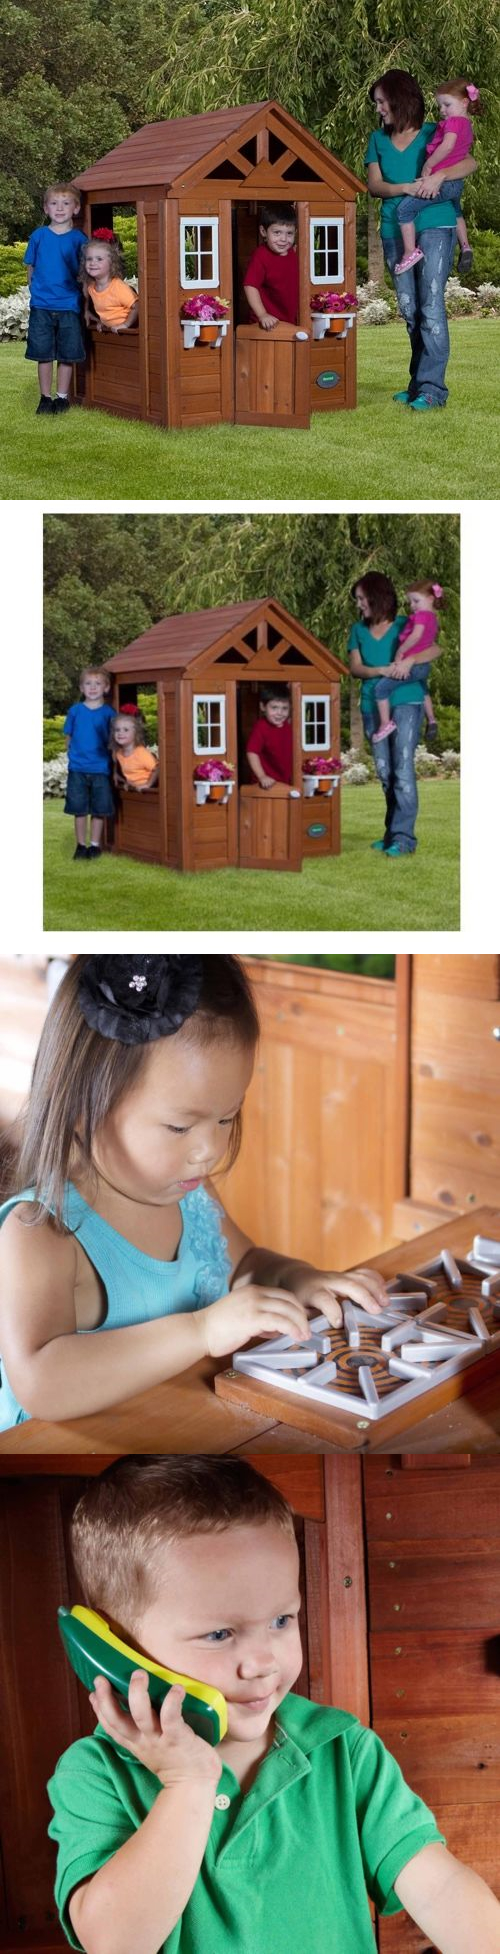 permanent playhouses 145995 children kids toddlers outdoor